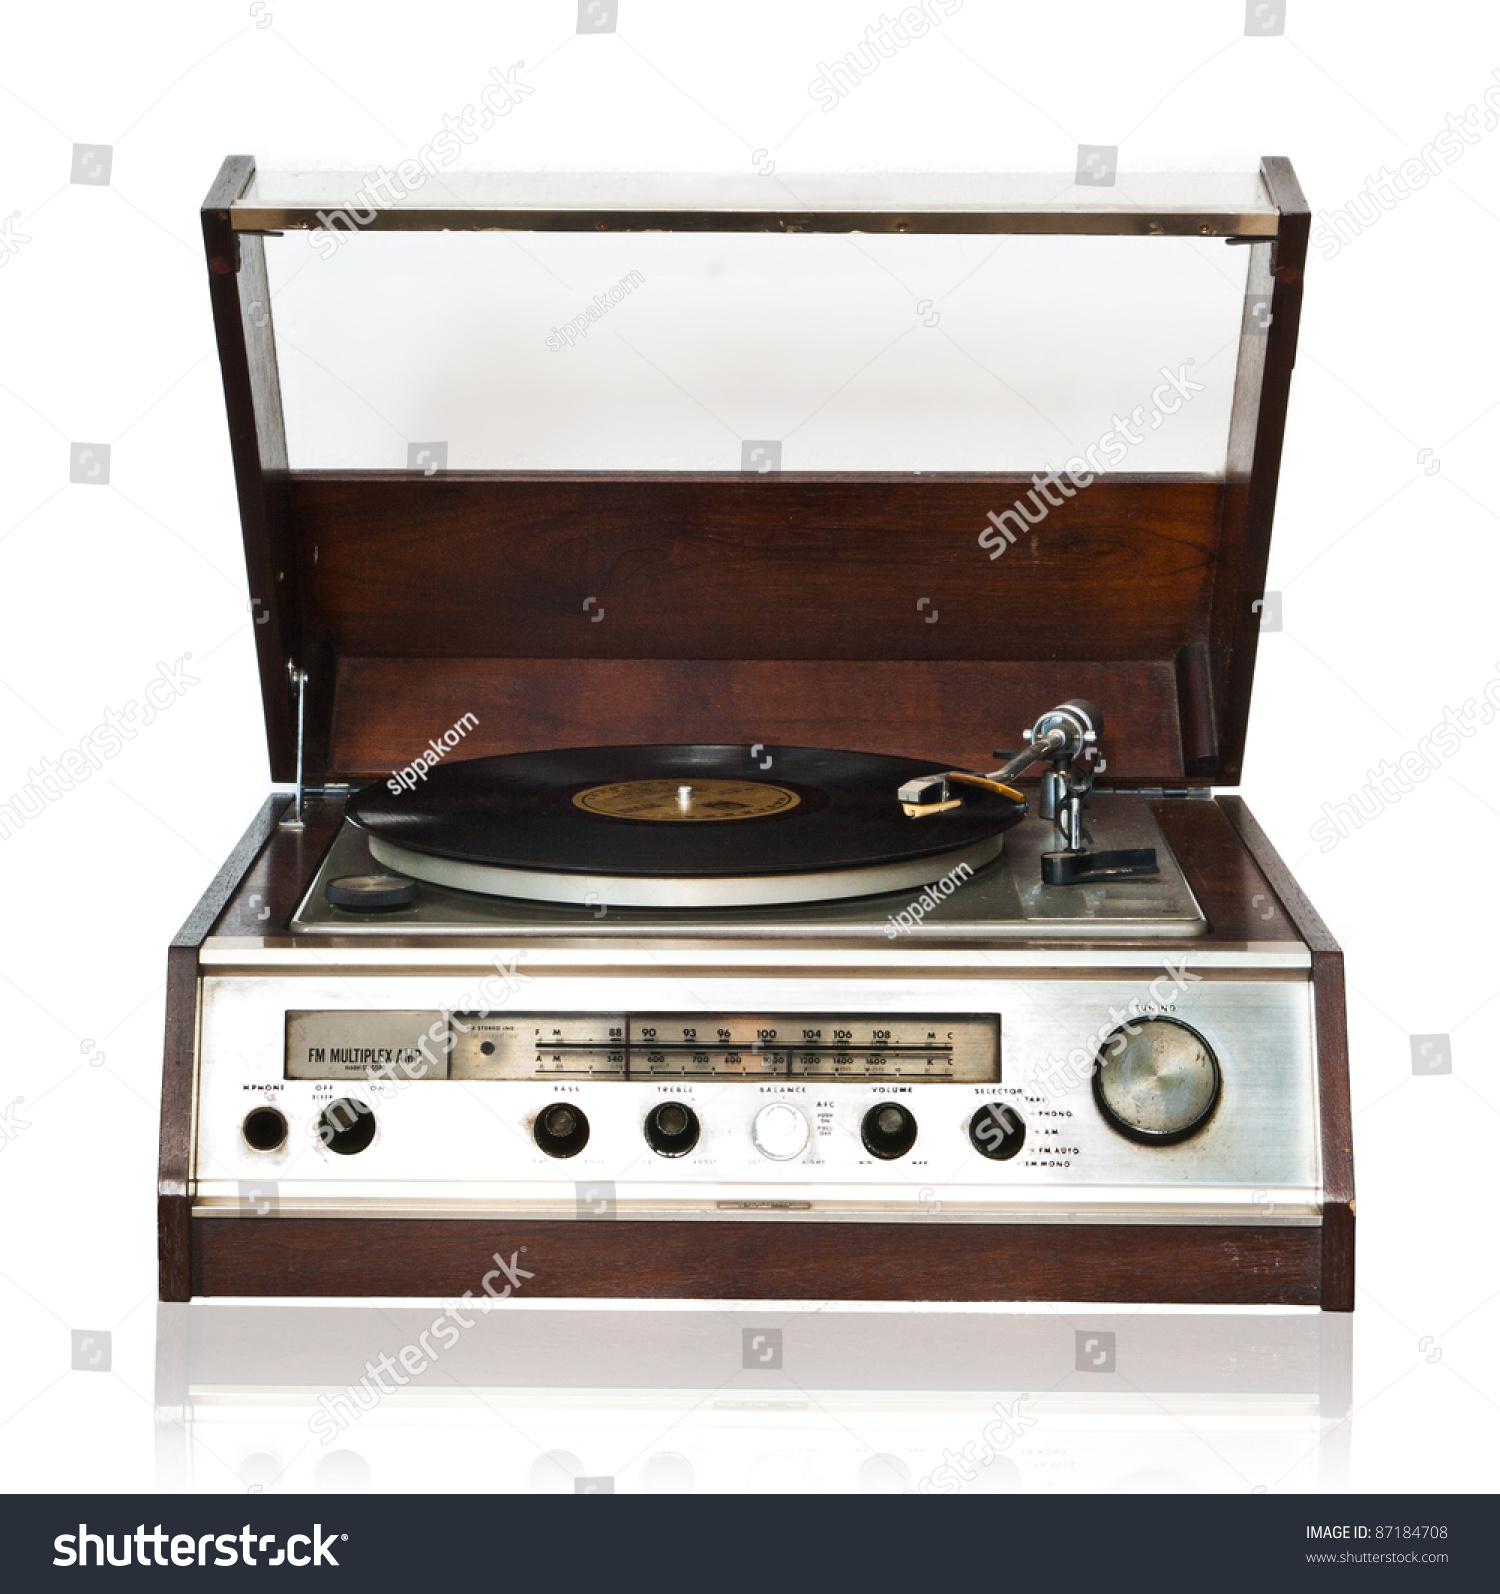 Vintage Record Player With Radio Tuner Isolated On White